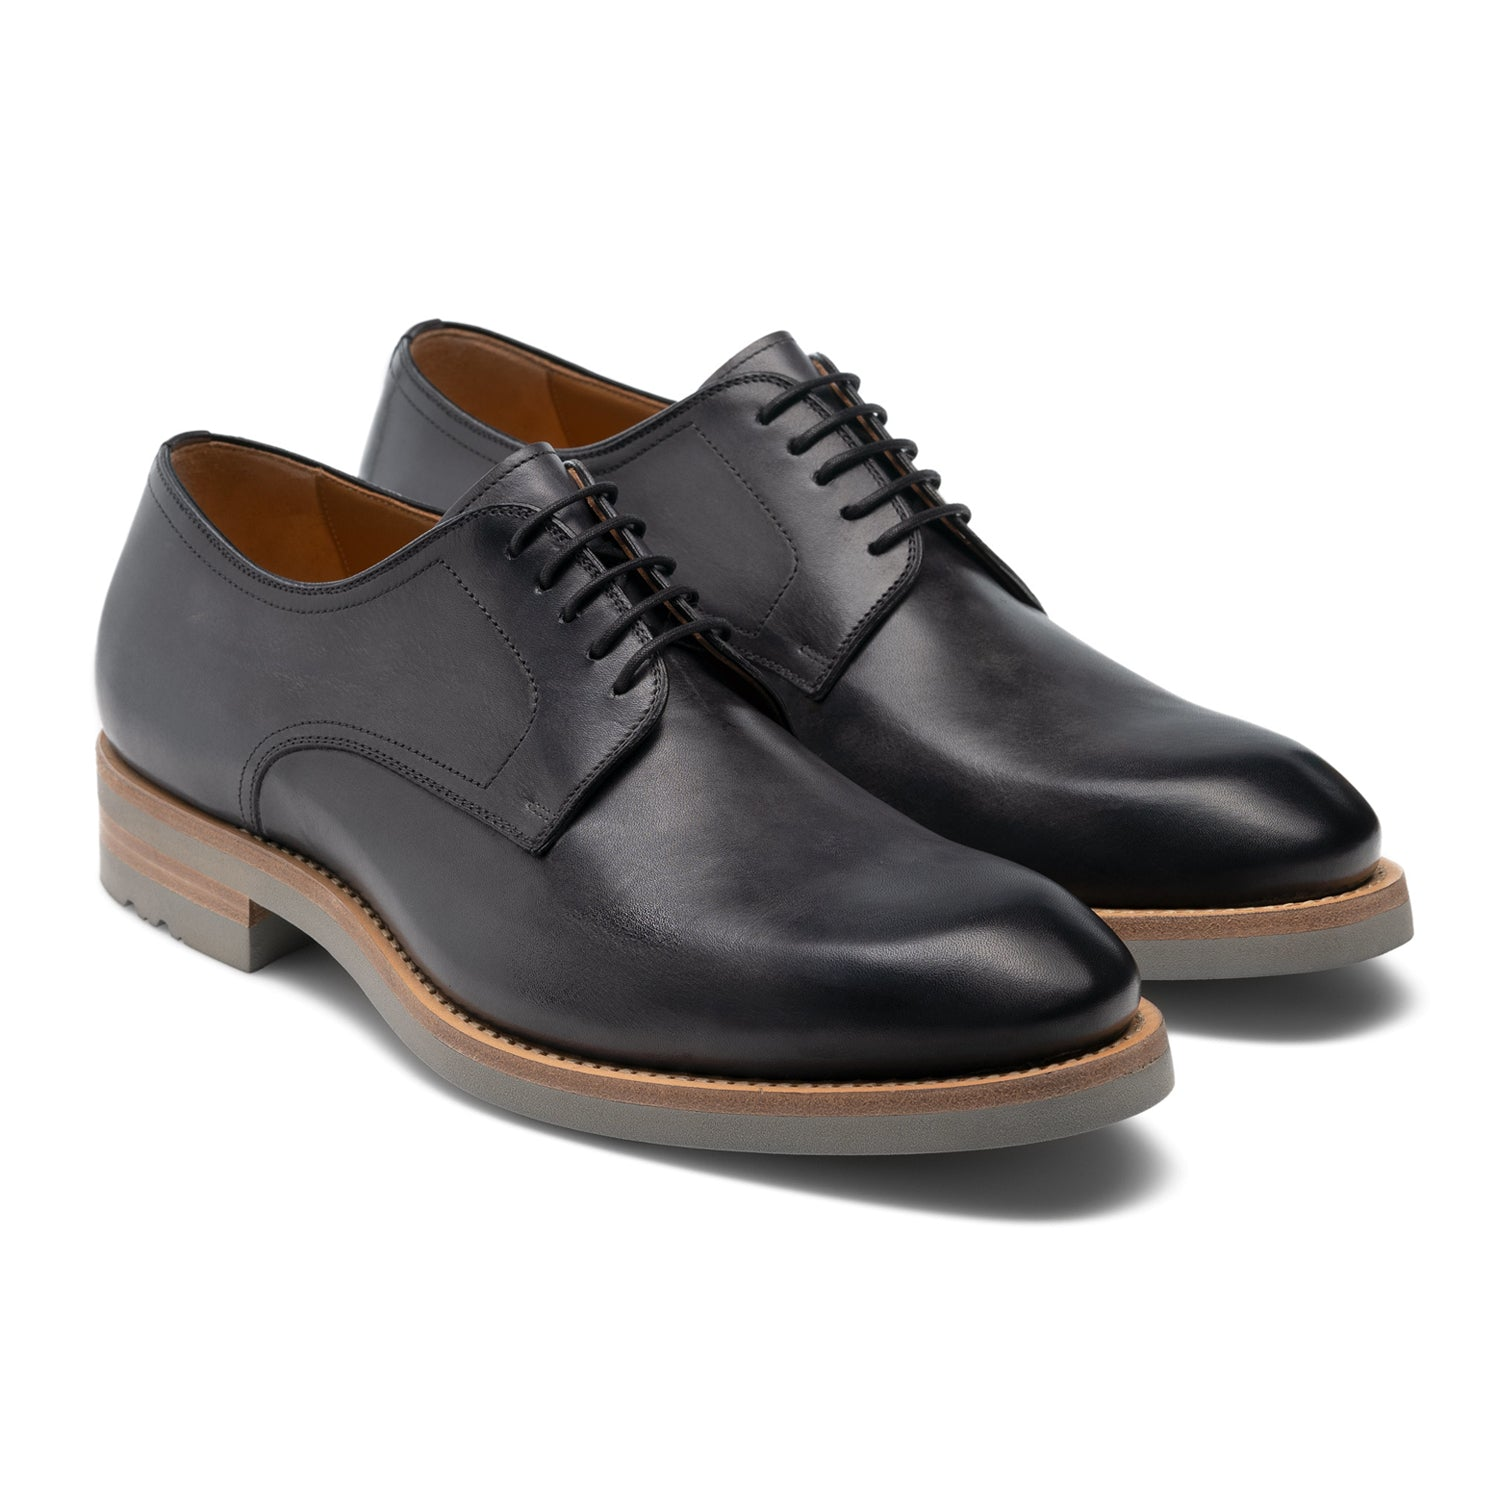 Bolsena II Plain Toe Blucher